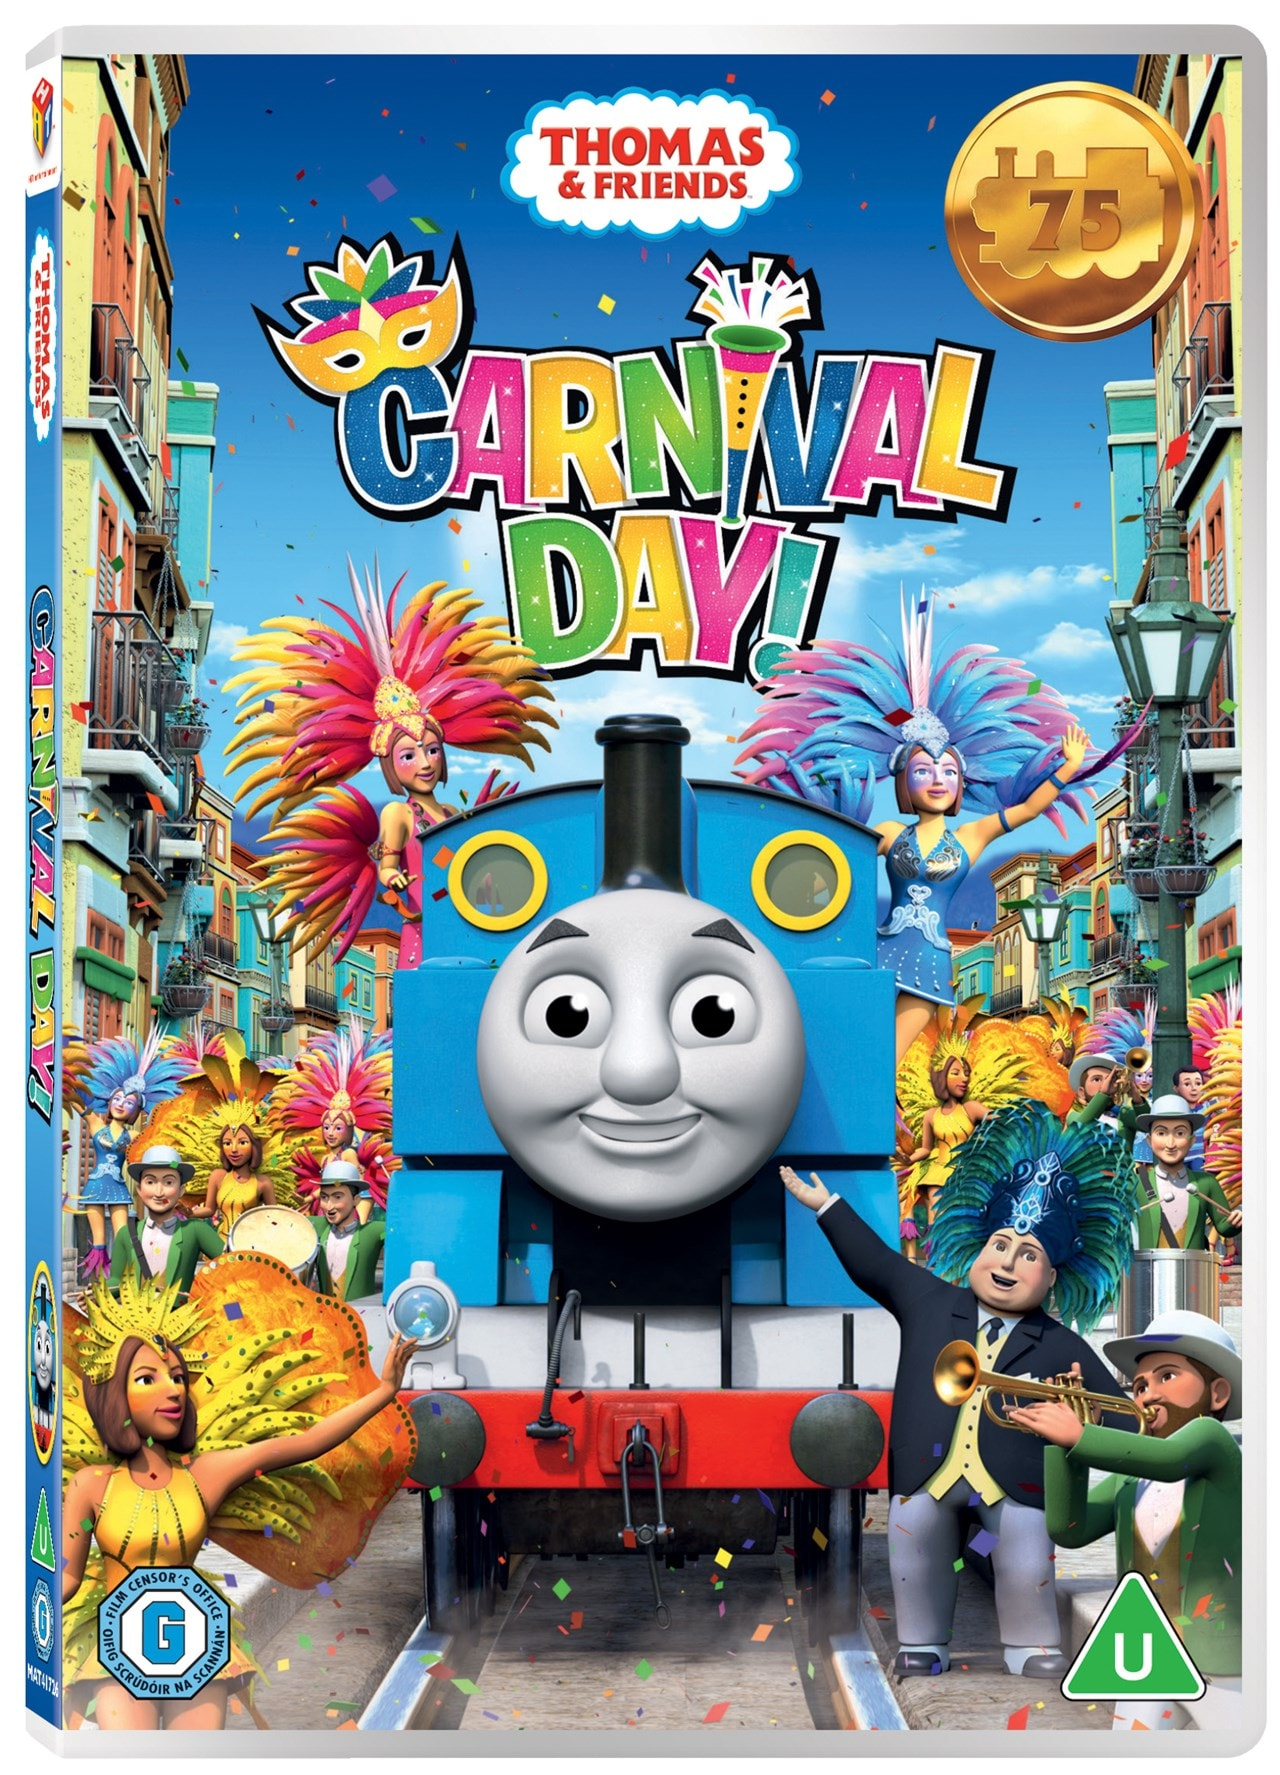 Thomas & Friends: Carnival Day! - 2